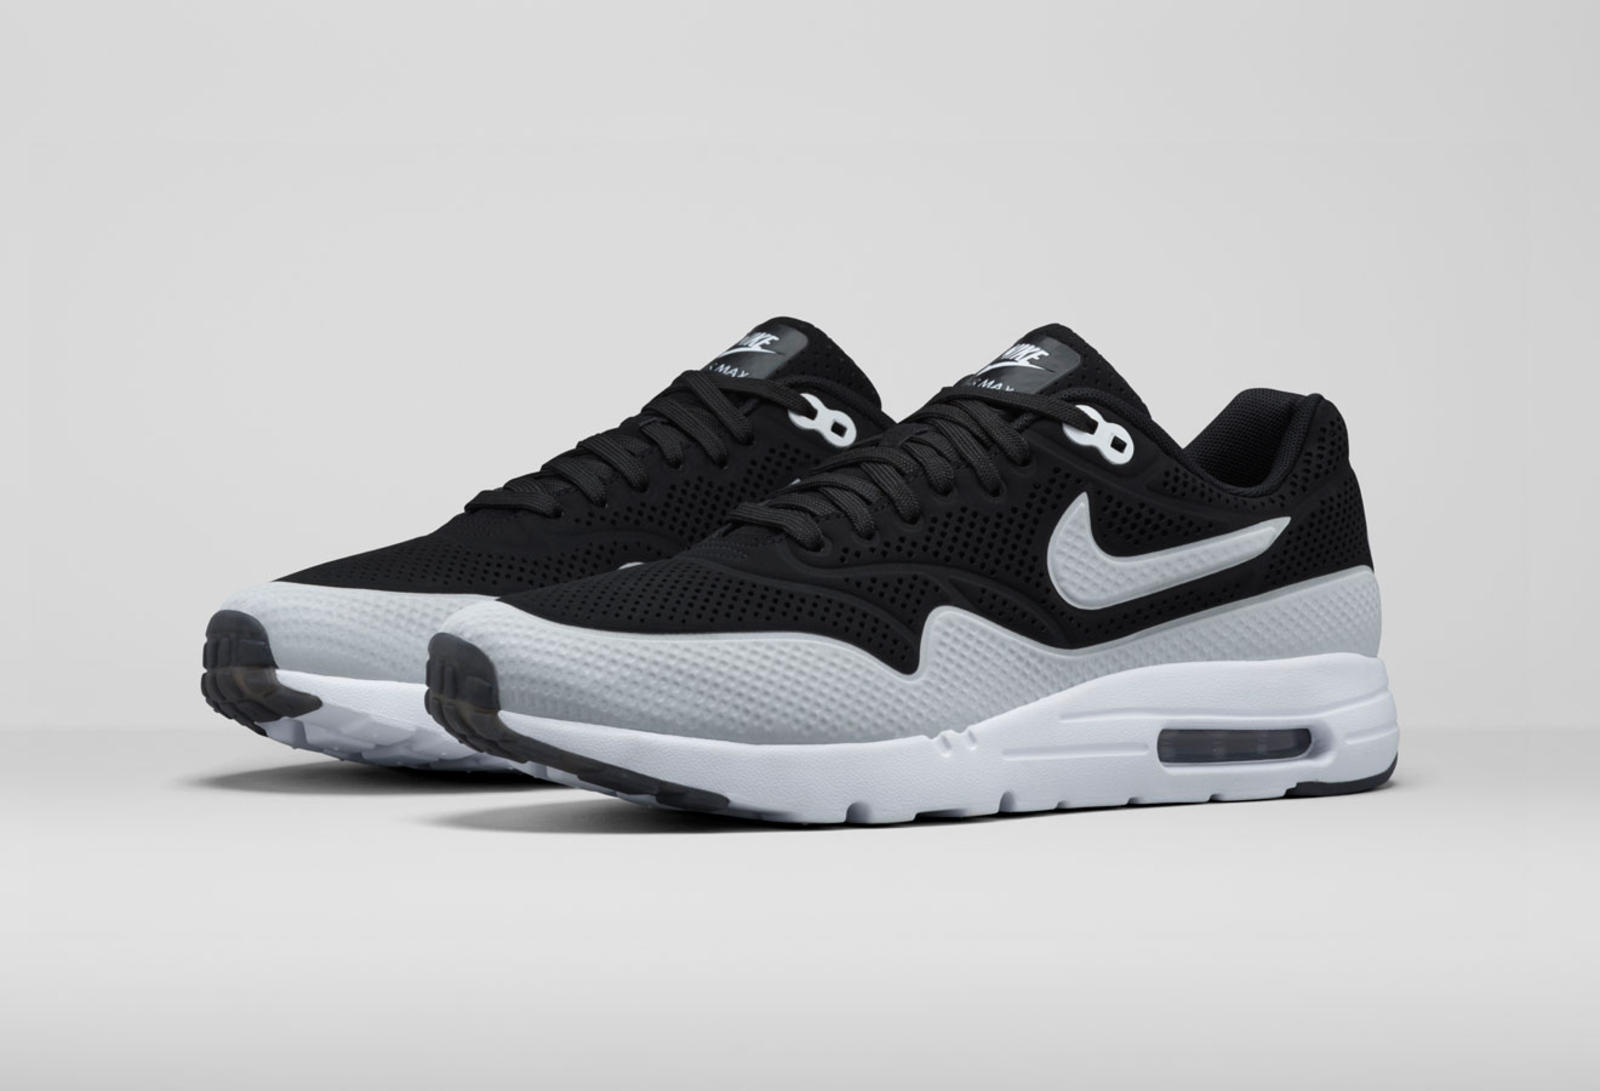 nike air max 1 ultra moire sneak art. Black Bedroom Furniture Sets. Home Design Ideas